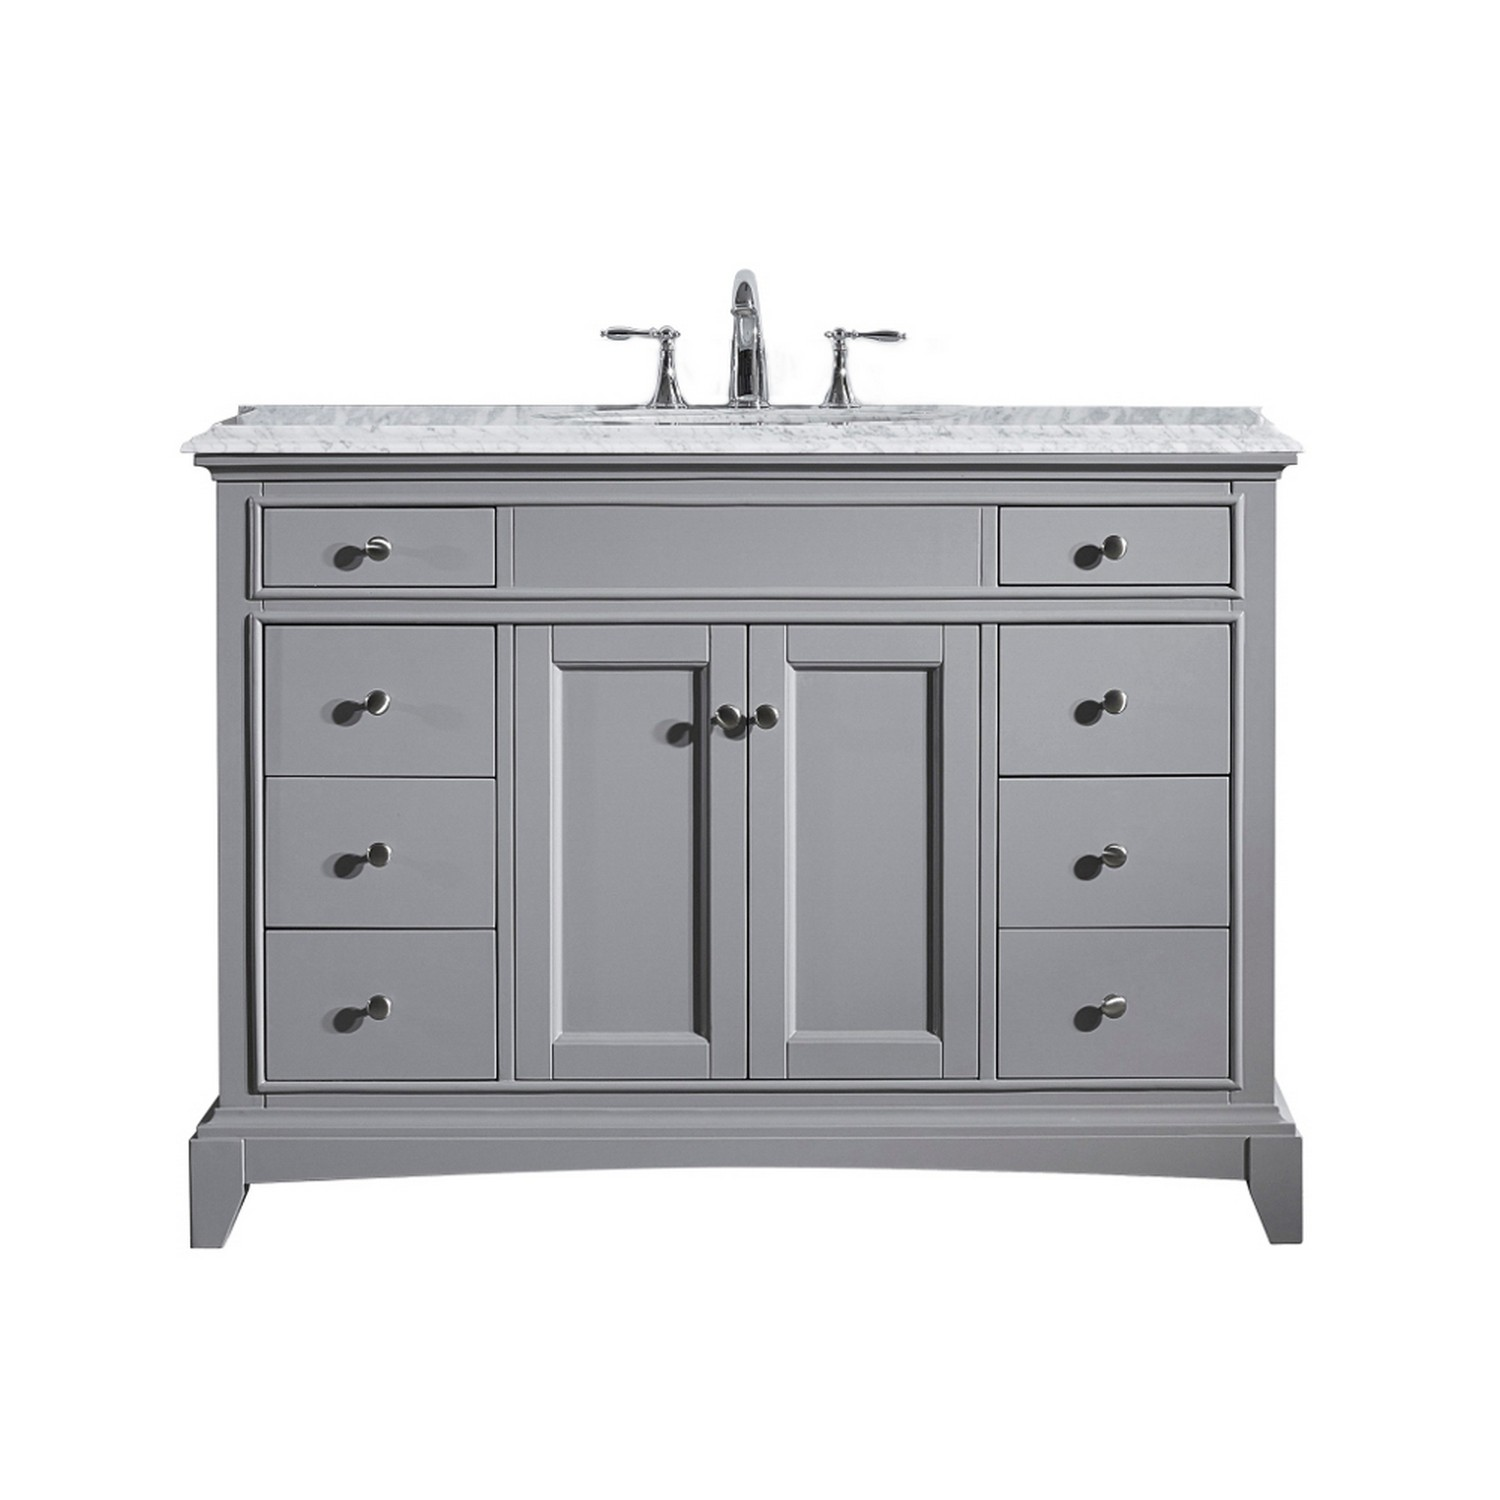 Eviva Elite Stamford 48 Gray Solid Wood Bathroom Vanity Set